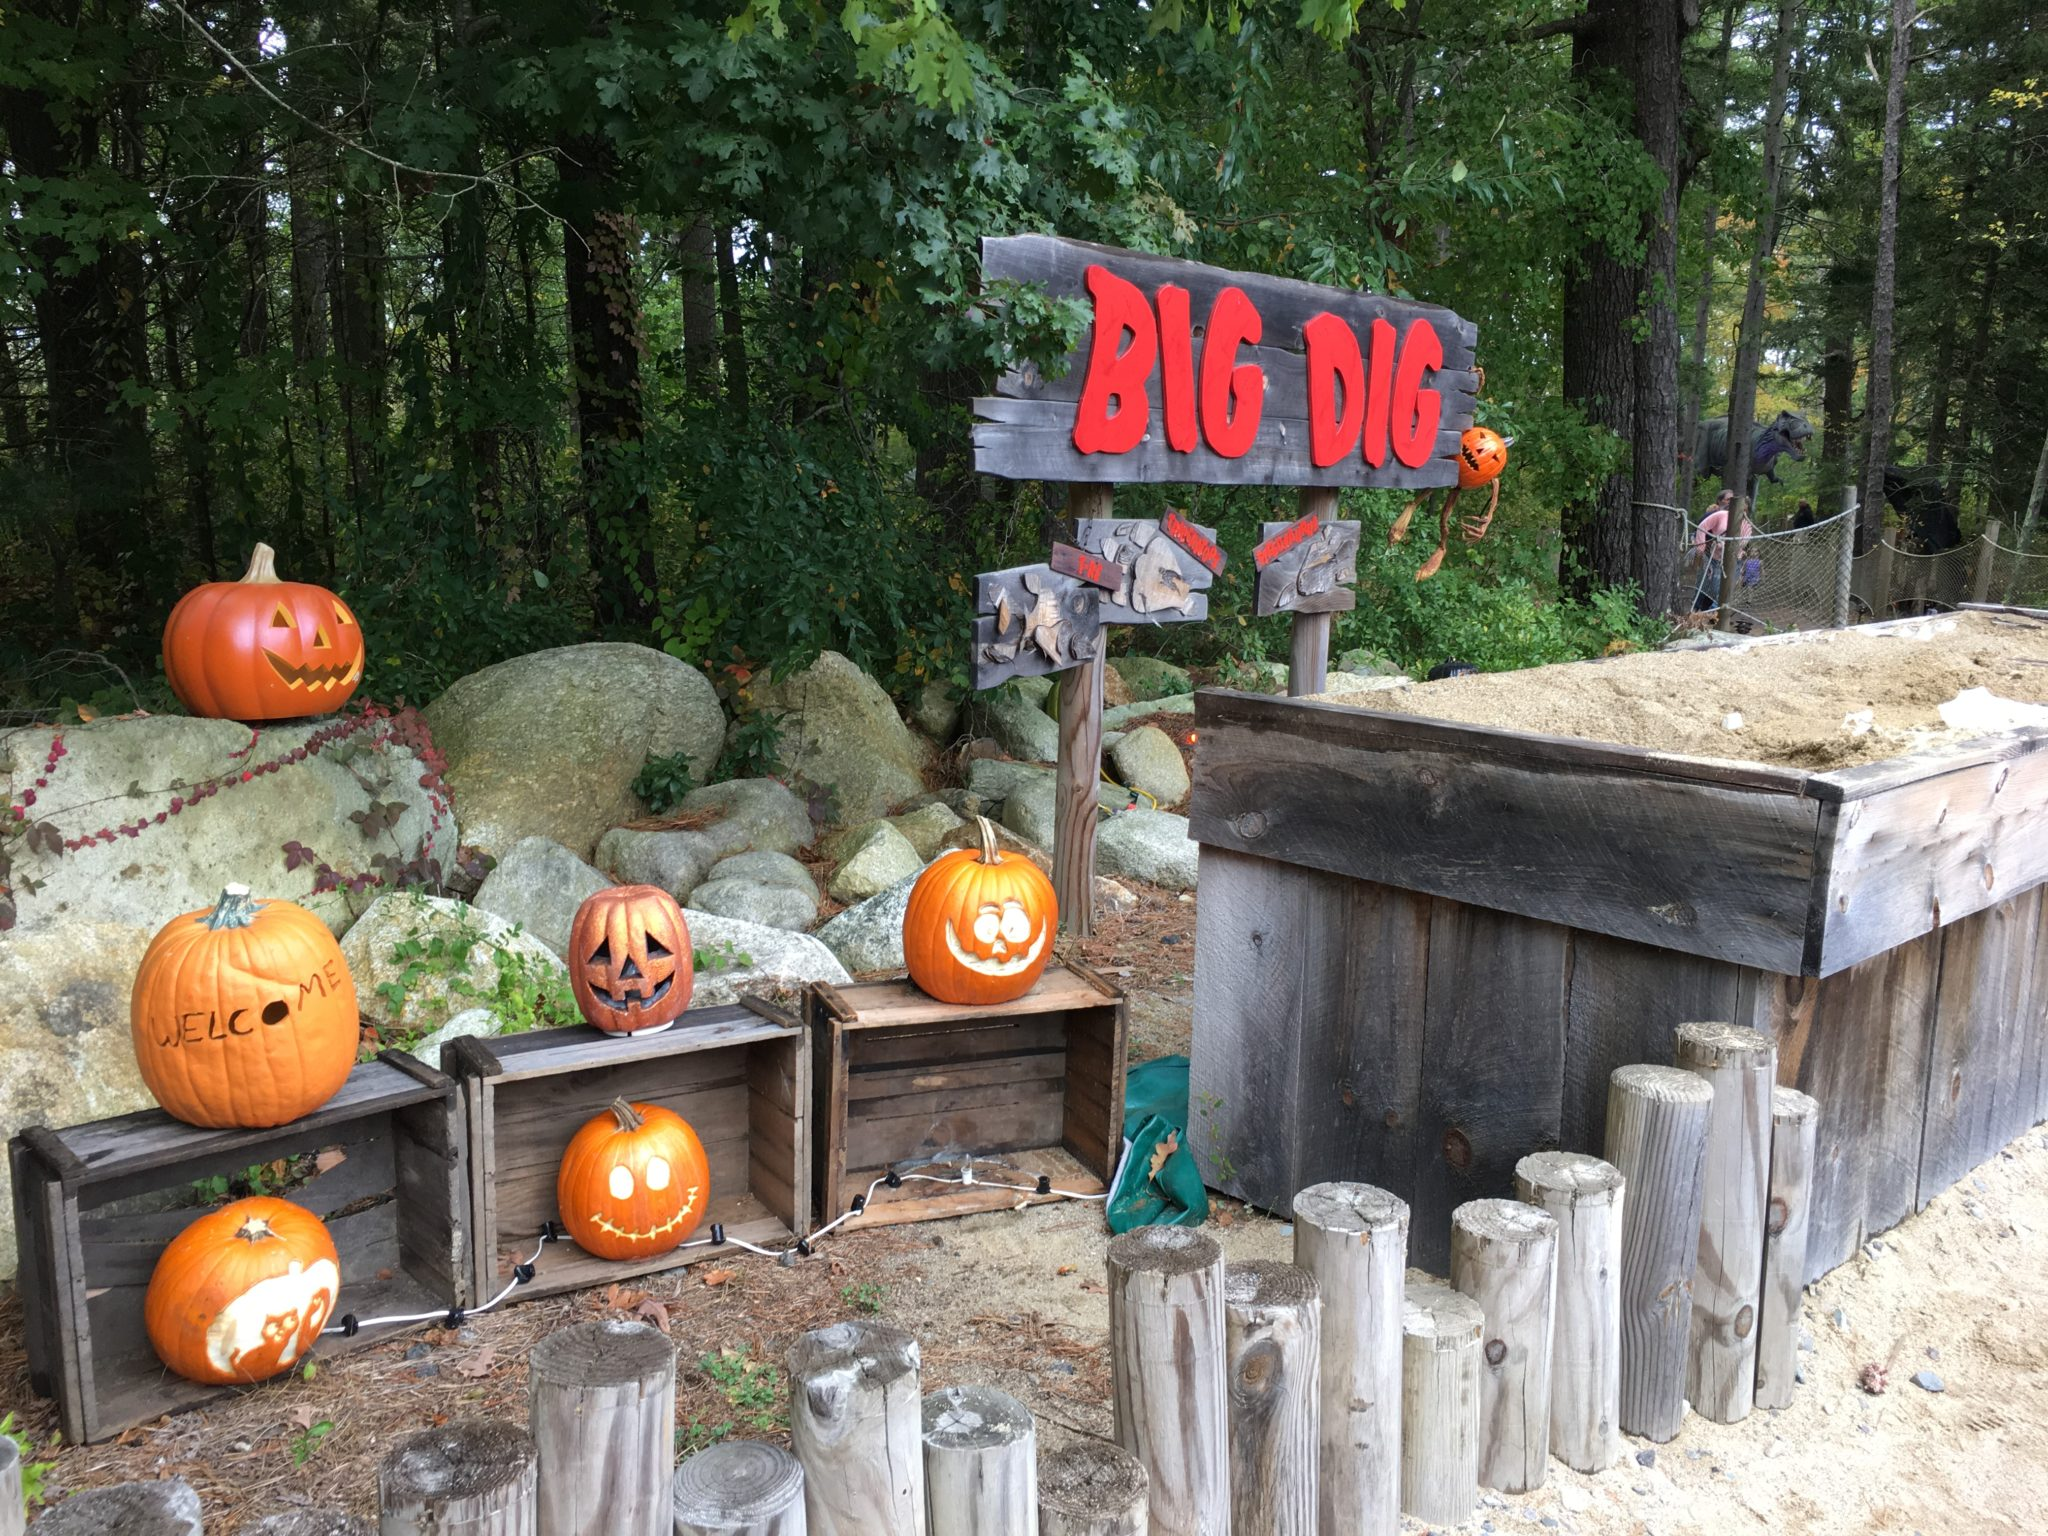 Halloween Fun at Edaville Family Amusement Park's Not So Spooky Halloween event being held weekends throughout October. It's fun for the whole family.